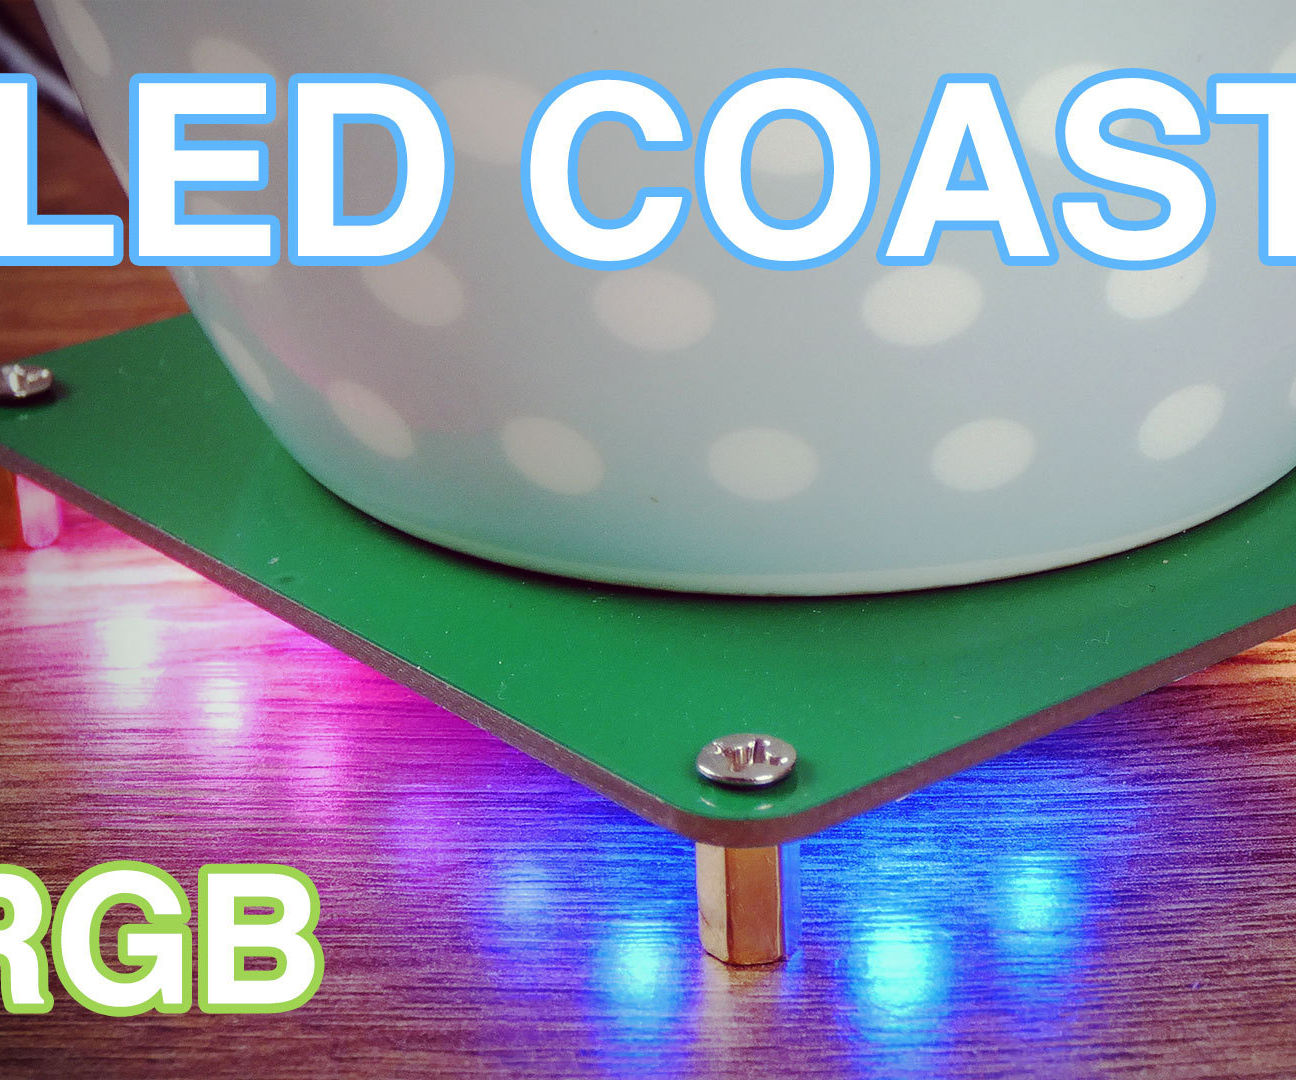 RGB LED Coaster Using the Arduino Compatible Piksey Atto